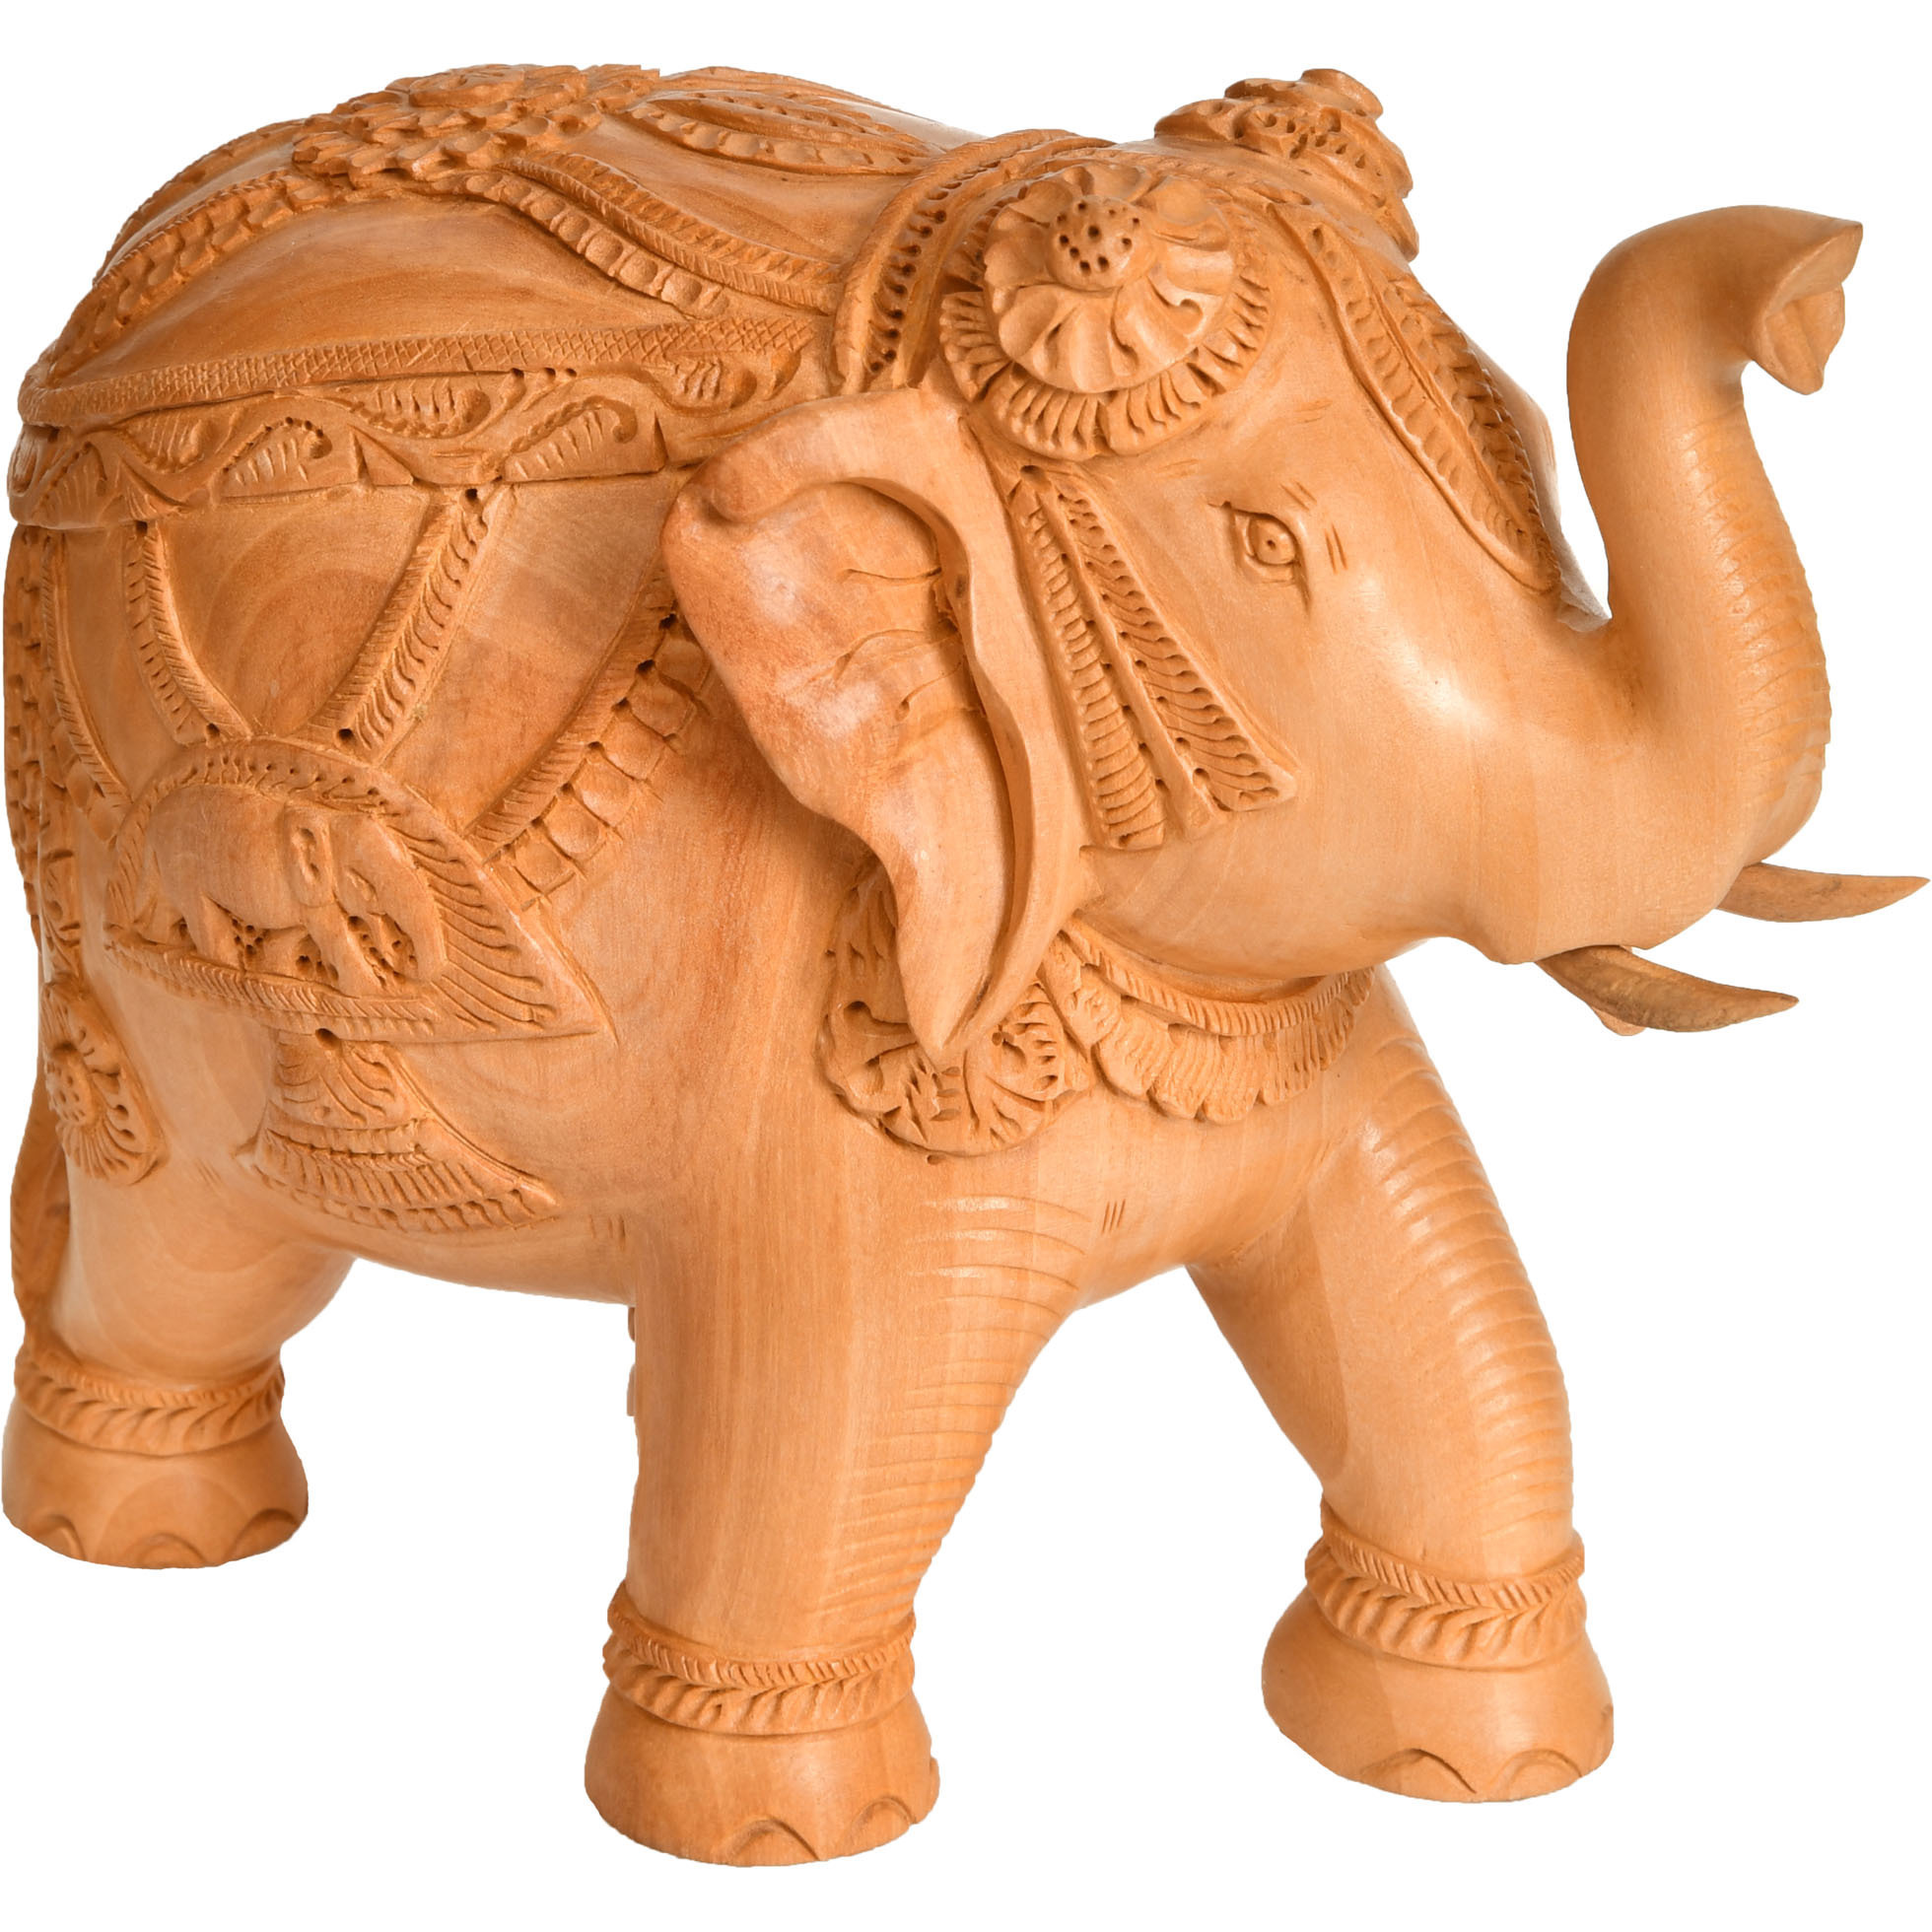 Wooden Decorated Elephant with Upraised Trunk